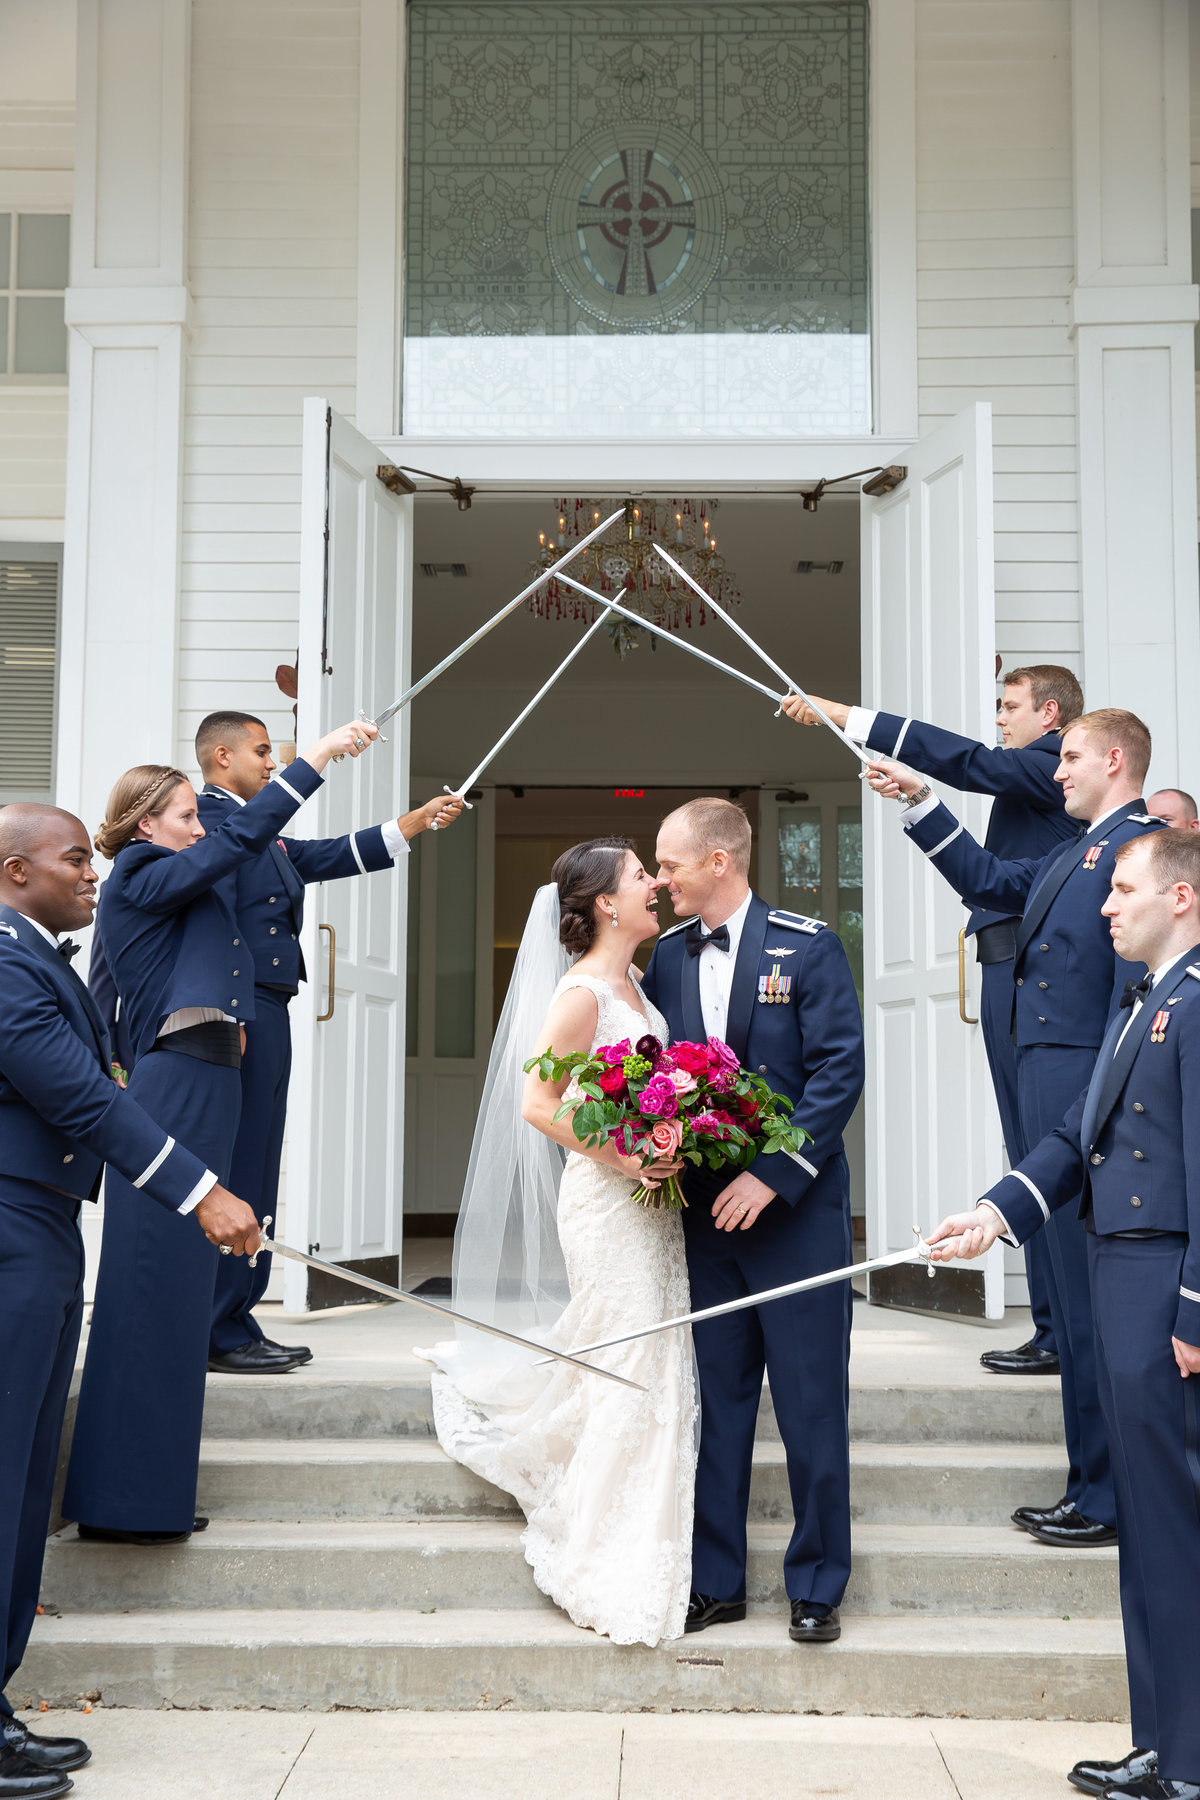 Military arch of swords wedding send off in Ocean Springs at First Presbyterian Church